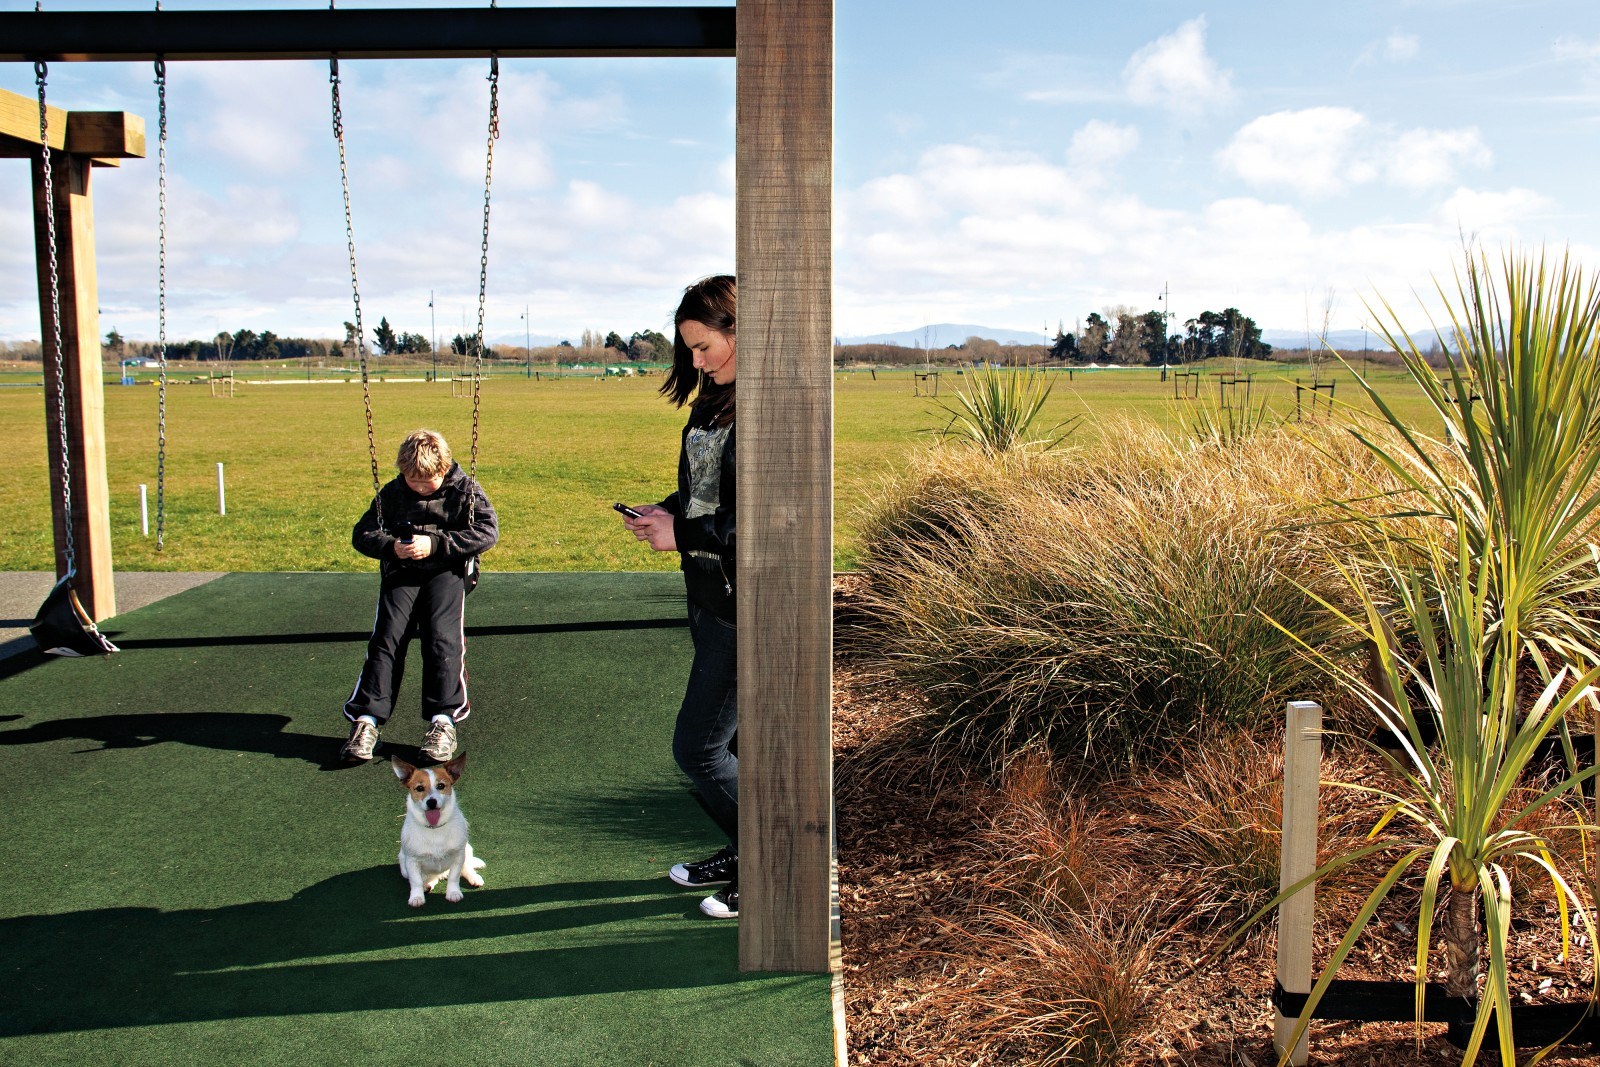 A pair of swings and a playing field serve as placeholders for a planned outdoor recreation area that will include climbing rocks, BMX tracks, a skate park and an adventure playground with a 27-metre-long slide—the country's longest. For the town's pioneer residents, however, the lag between planning and implementation can be frustrating.